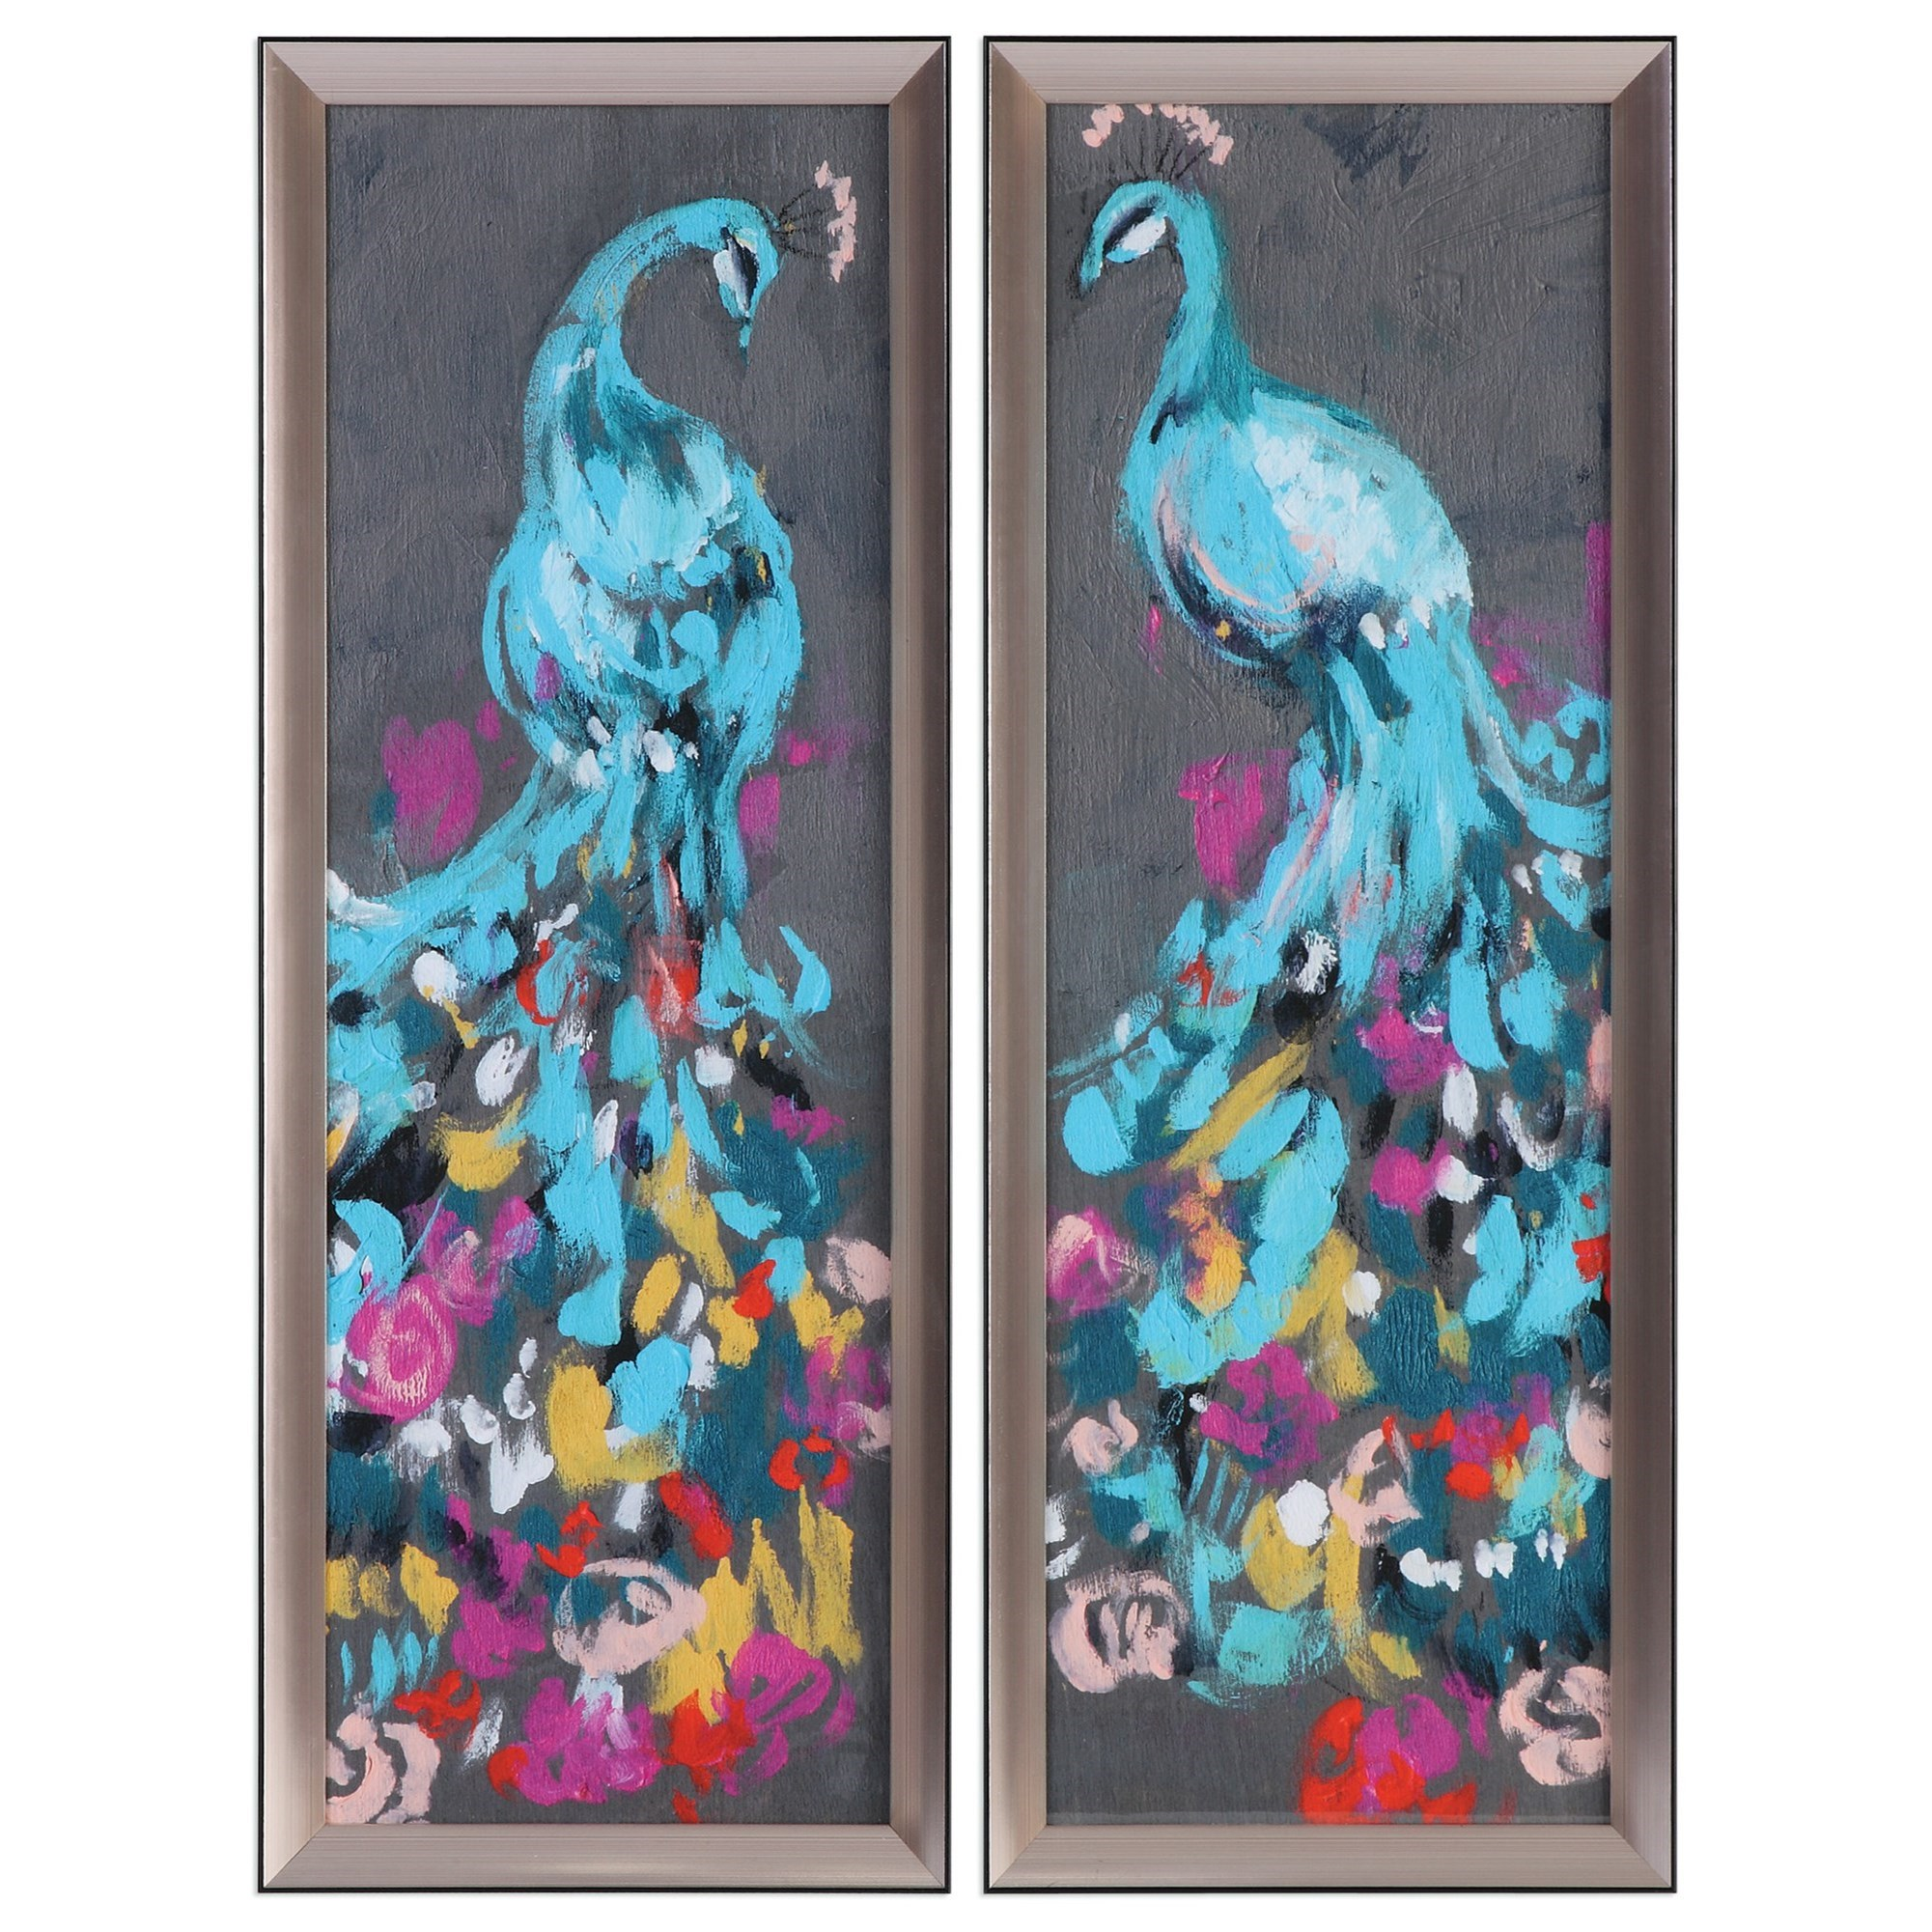 Uttermost Art Flower Feathers (Set of 2) - Item Number: 33640